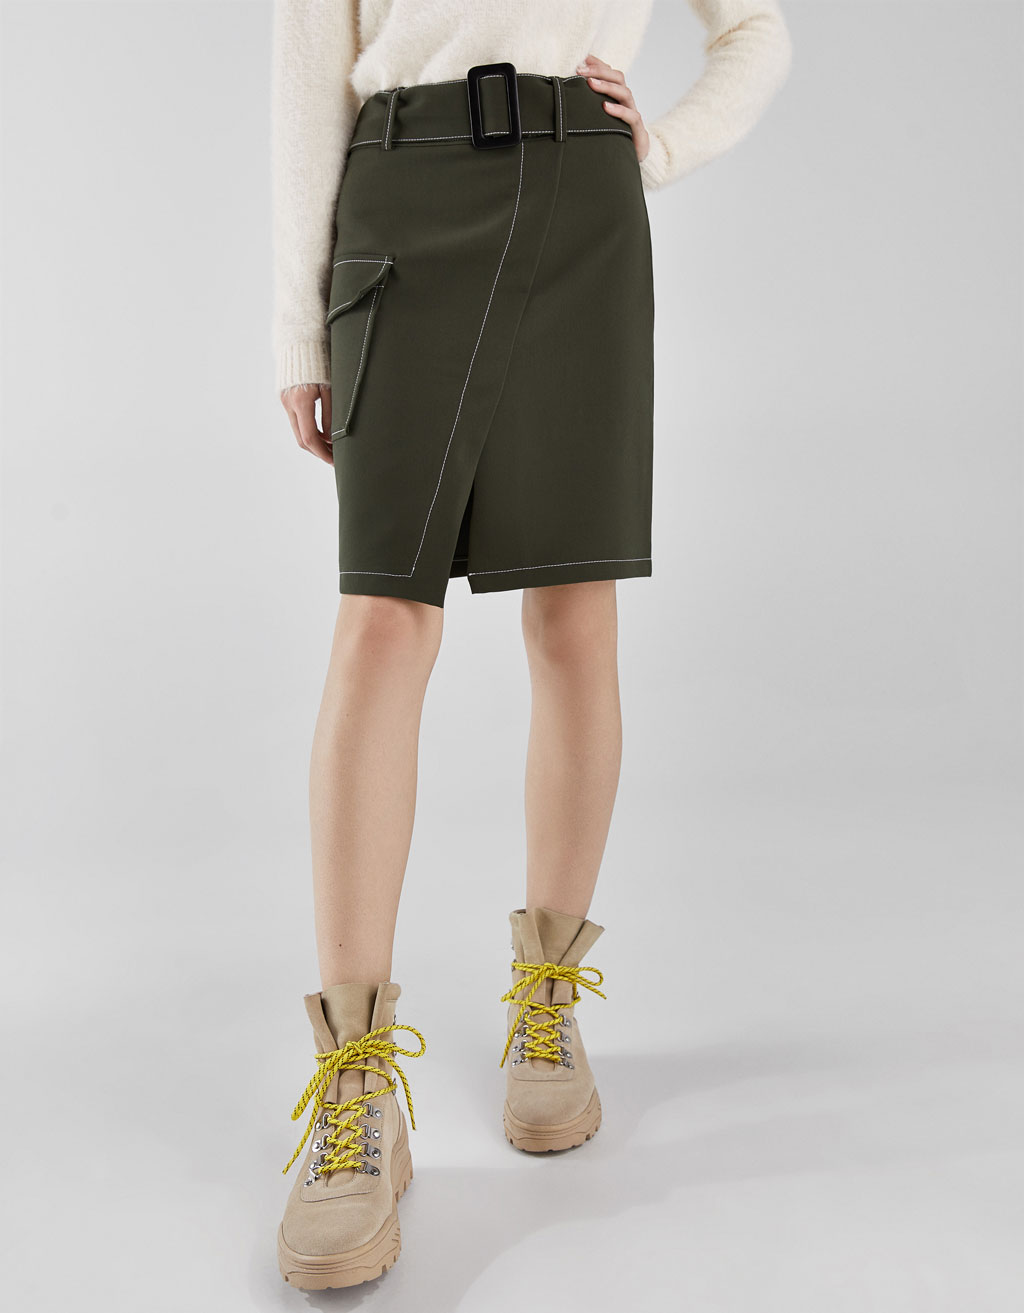 Wrap skirt with buckle